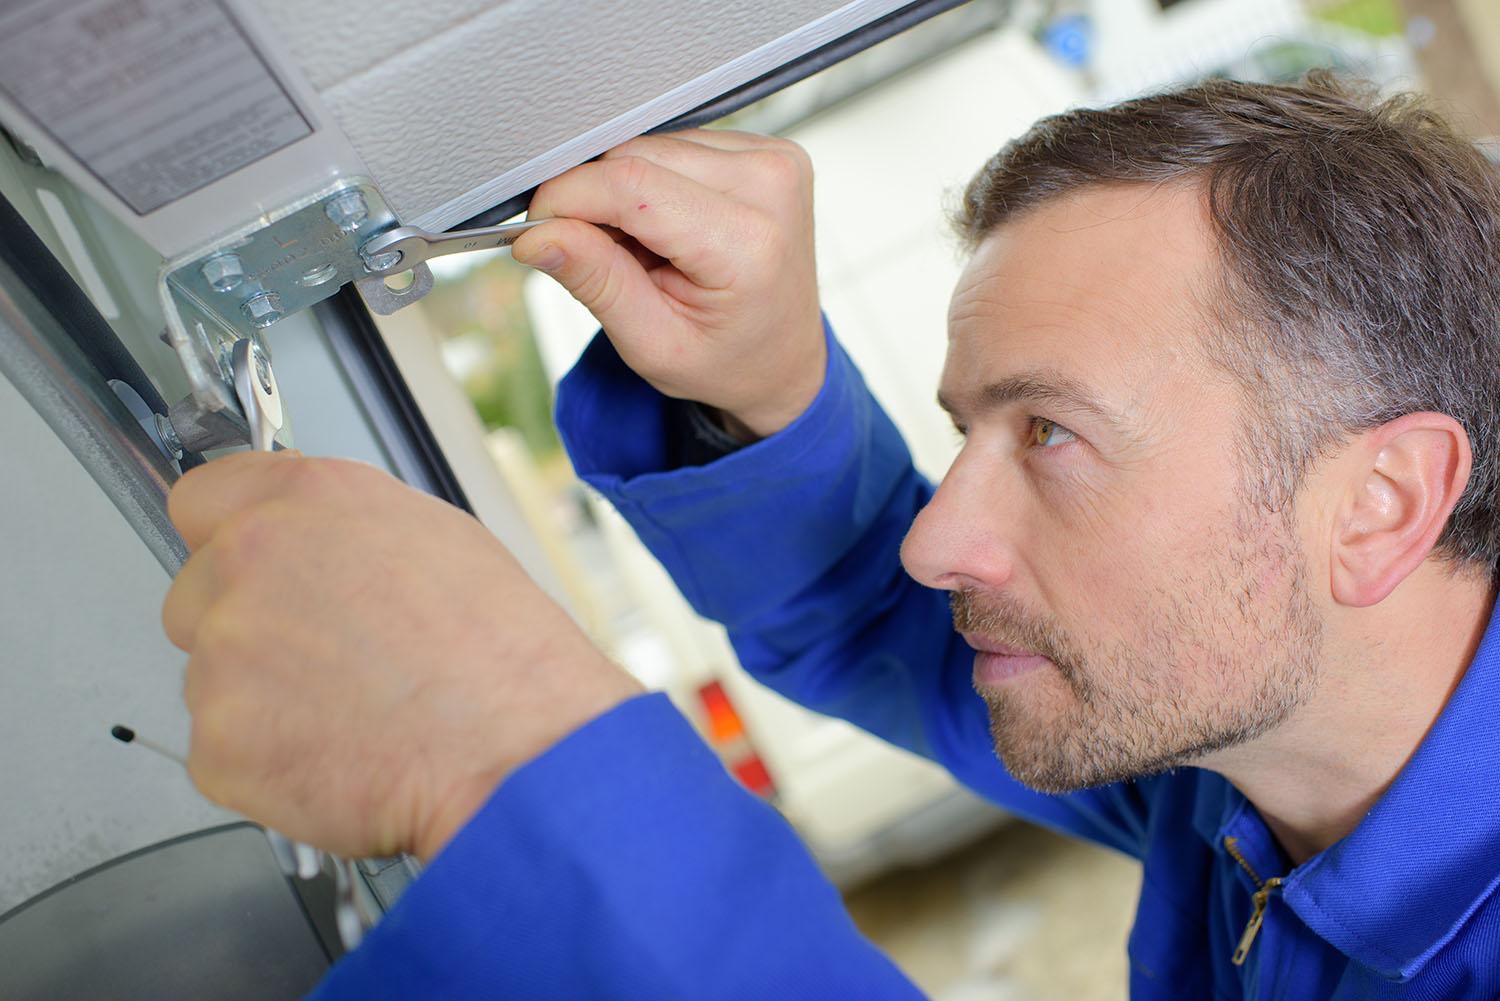 home and commercial door services in melbourne fl and port st lucie fl